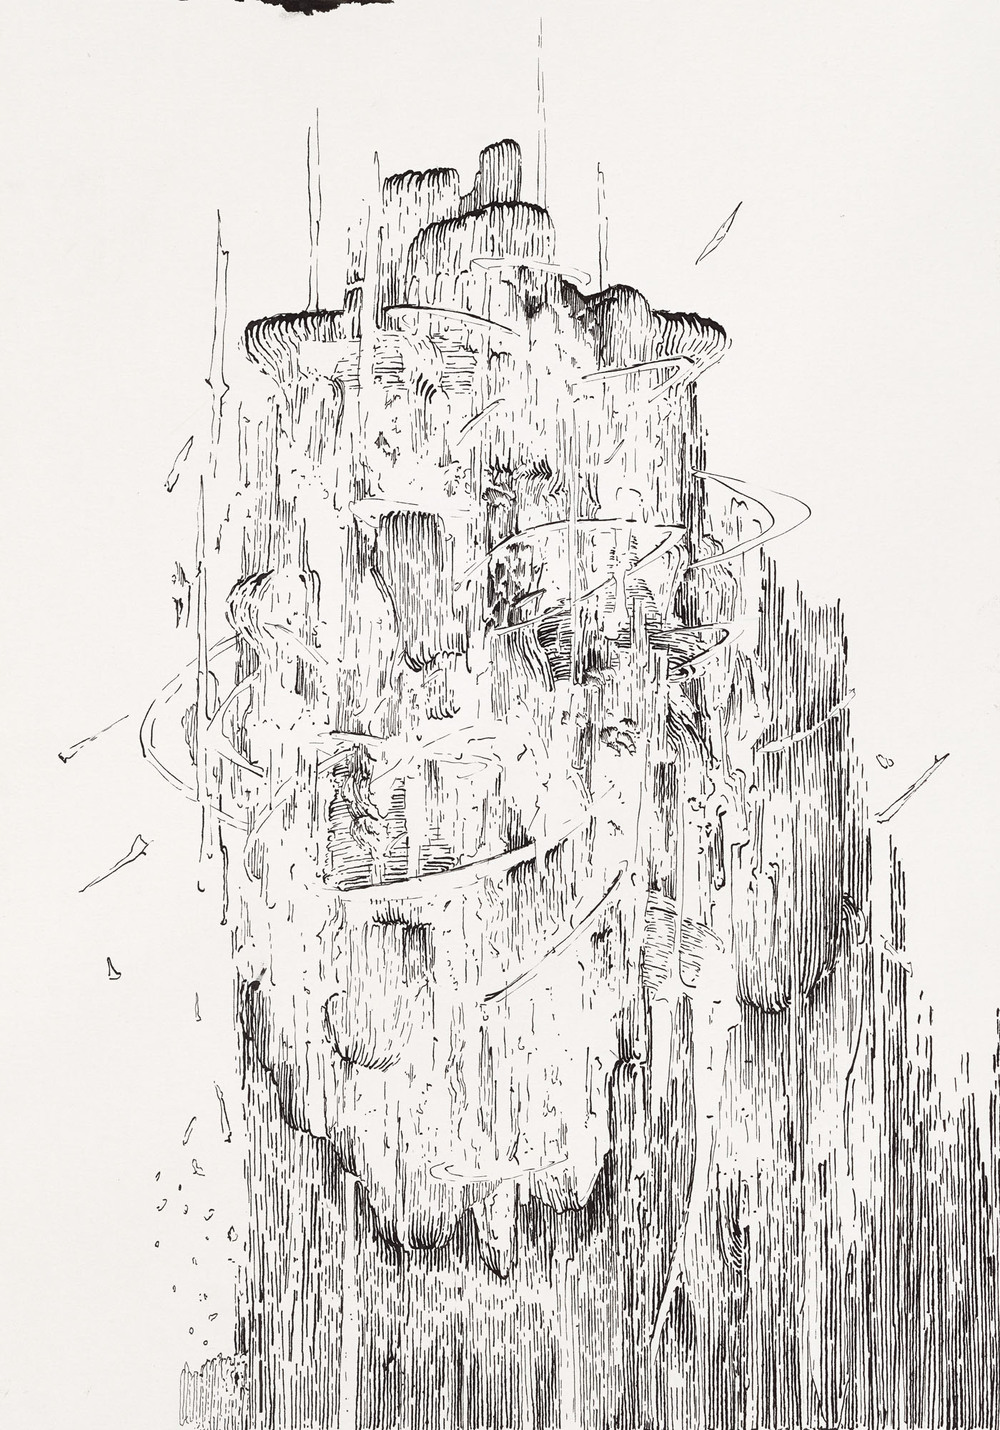 B_K_P_16516__untitled_ink_on_paper_21x29cm_2012